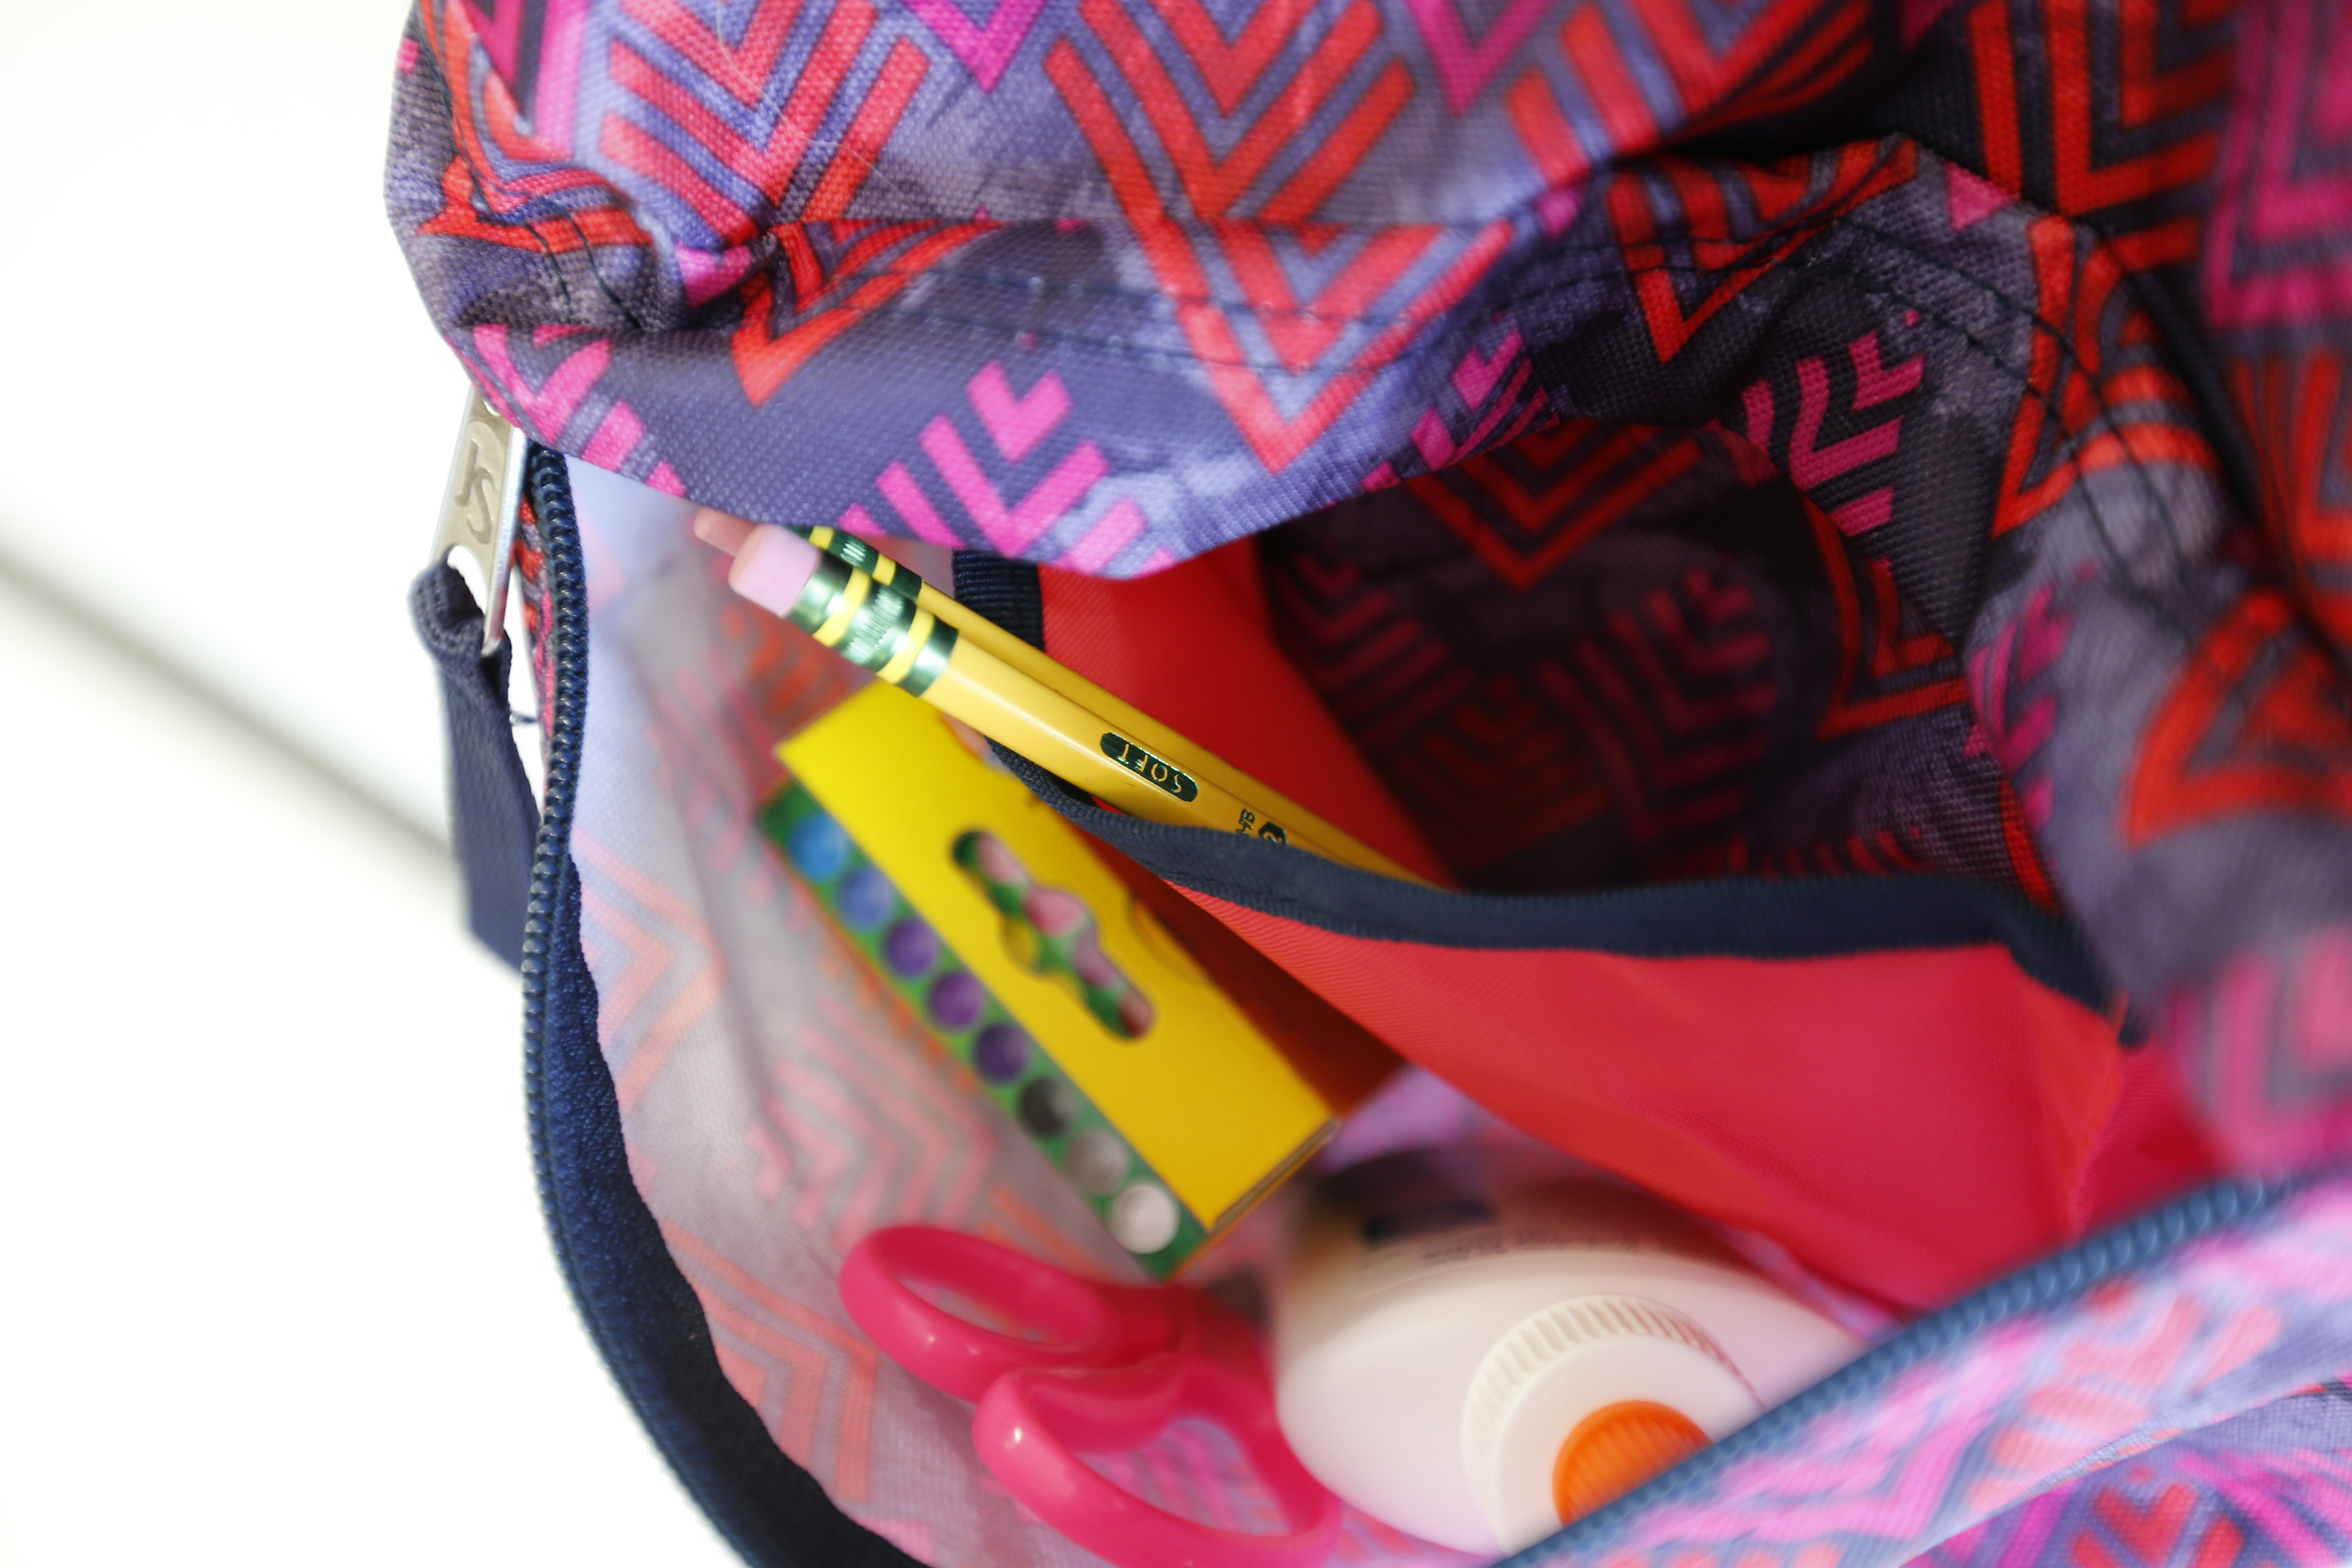 Pockets in Jessica Cwierley's backpack help keep her organized.